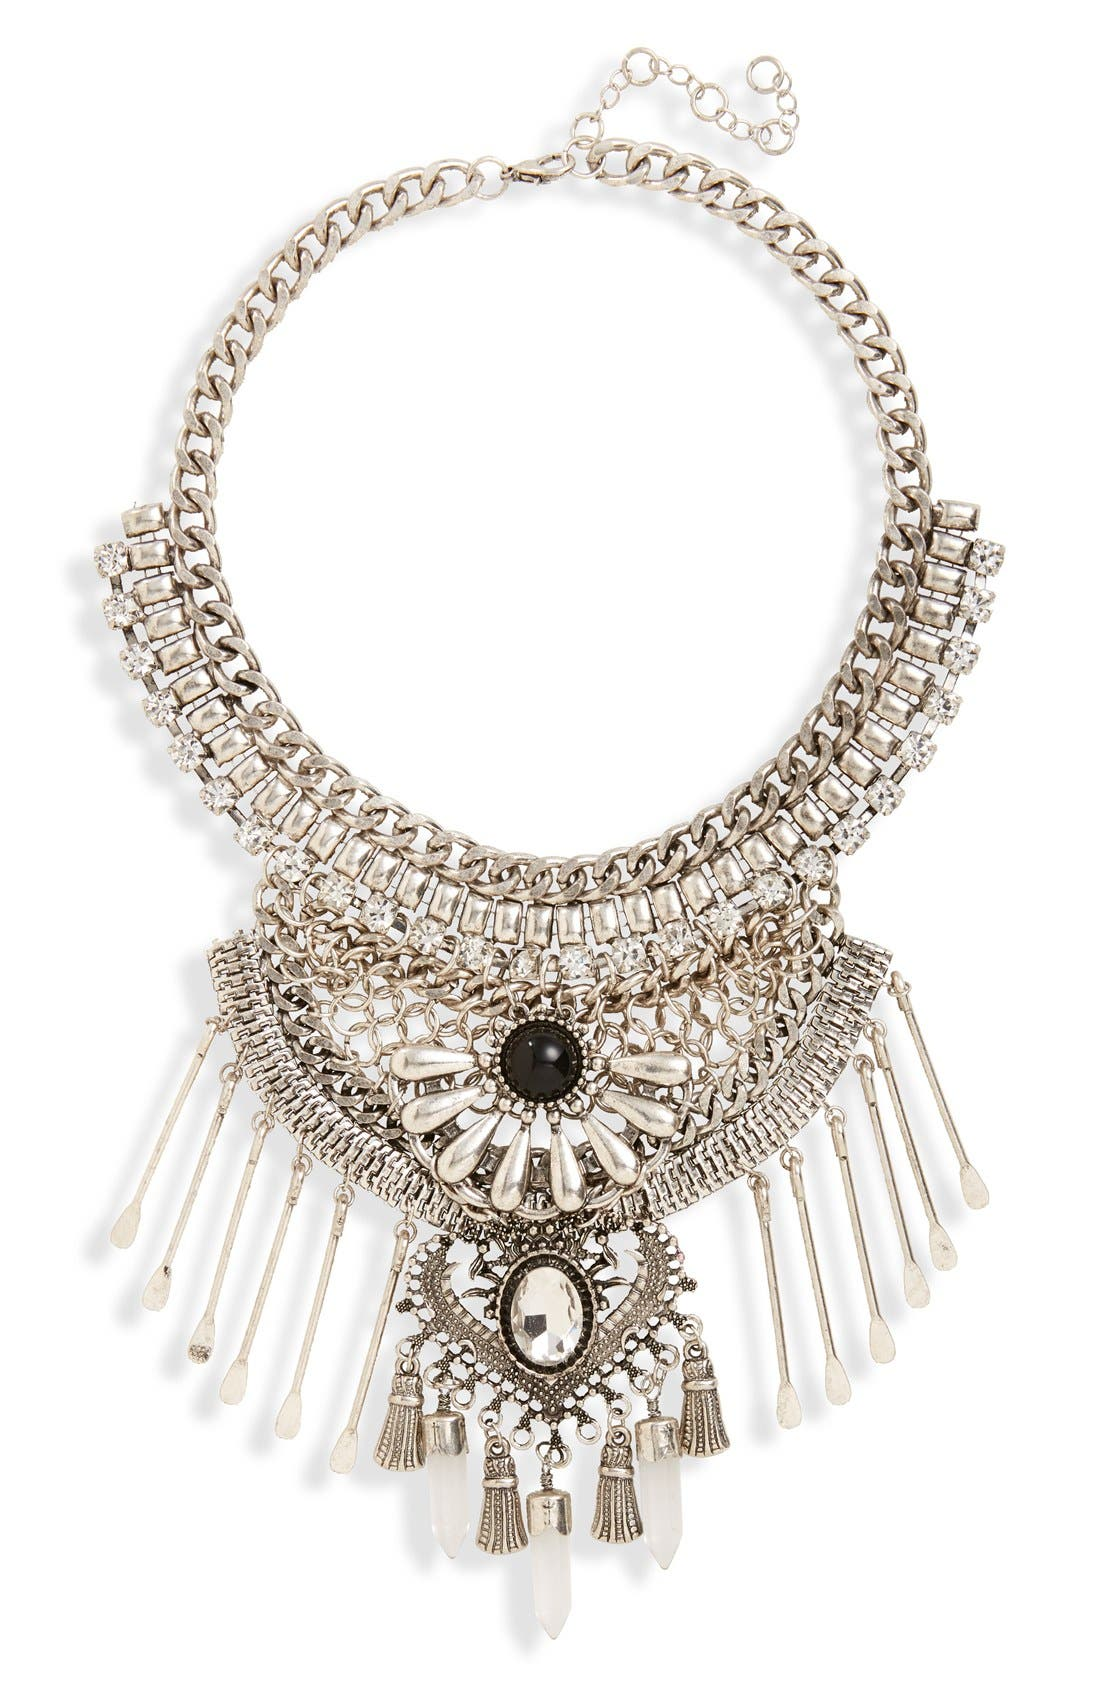 Main Image - Leith Stone & Spoon Charm Statement Necklace